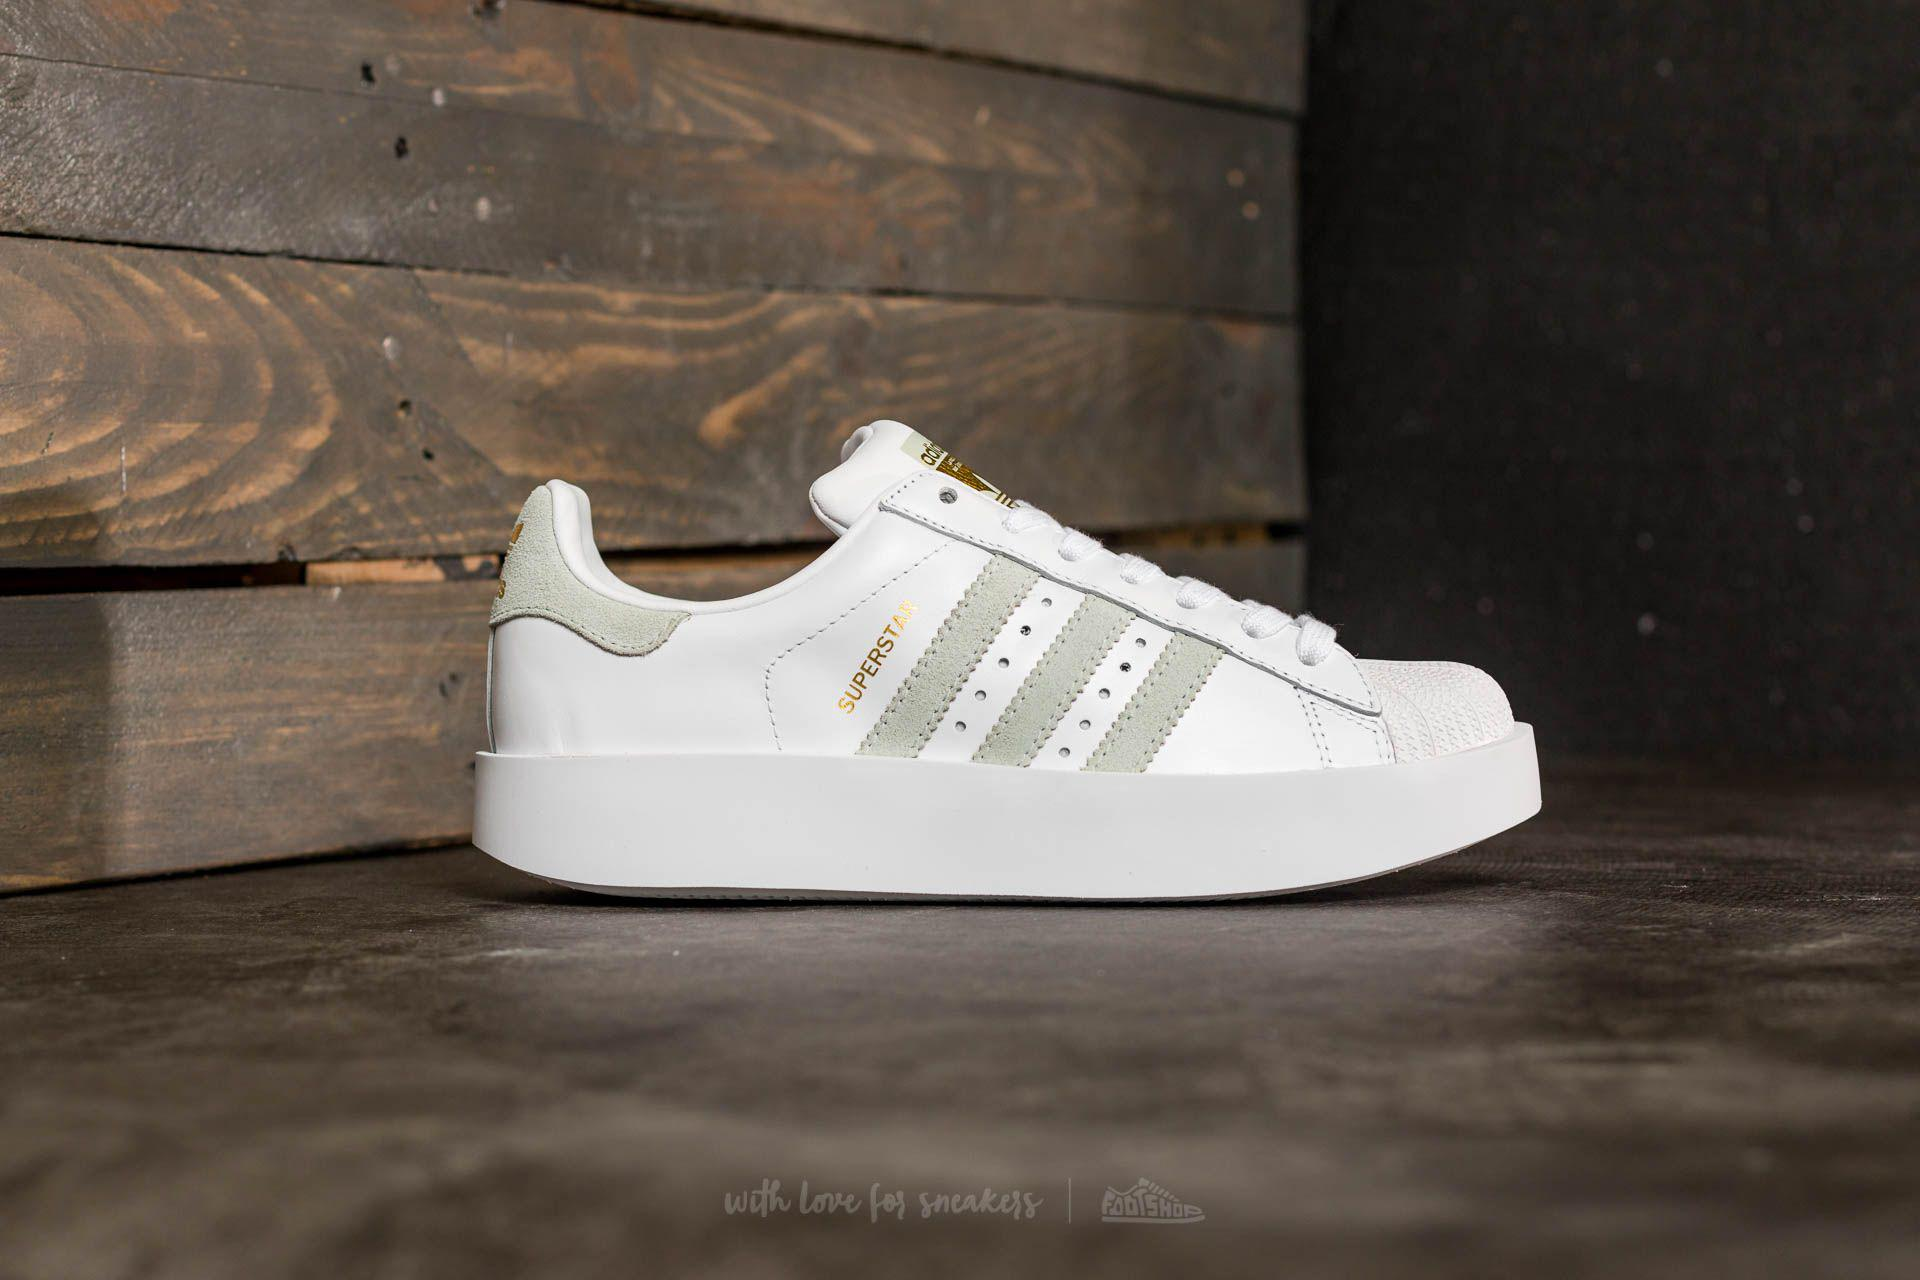 4992b8647506 ... ba7666 ftw white core black gold metallic women shoes 7ps505 adidas  bigger b875b 8fac7  coupon code for lyst adidas originals adidas superstar  bold w ...